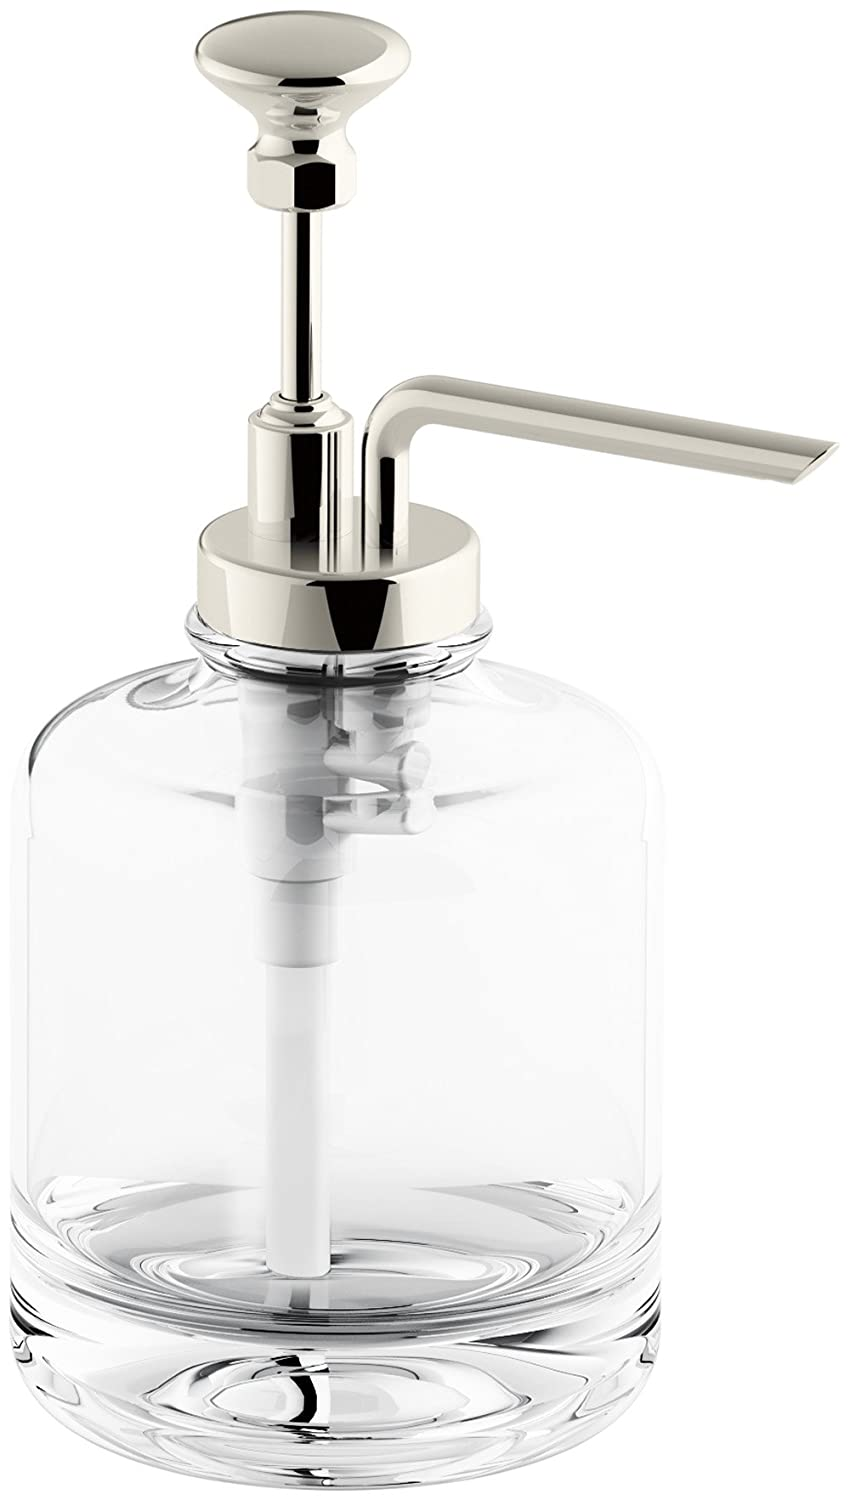 amazoncom kohler k 98630 cp artifacts soap dispenser assembly polished chromes home improvement